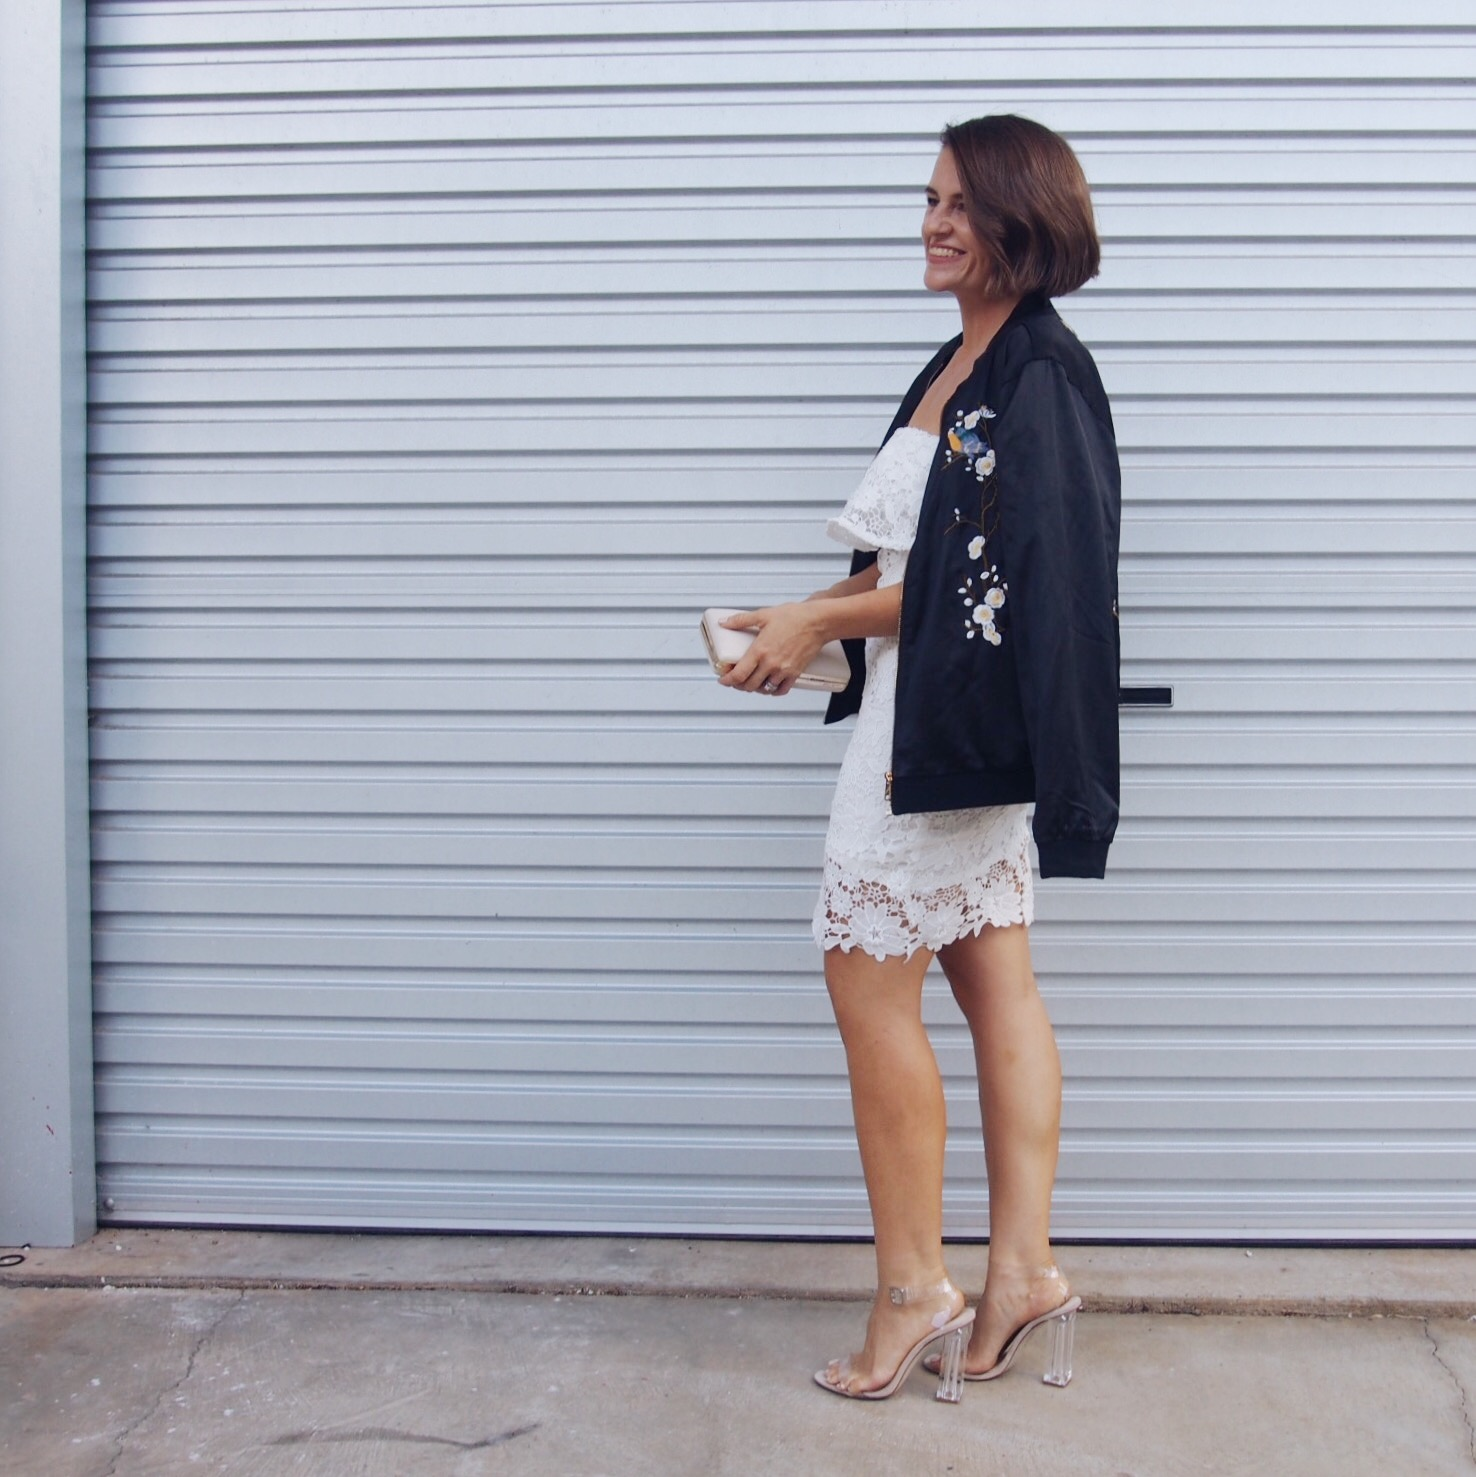 embroidered bomber jacket with white lace dress outfit